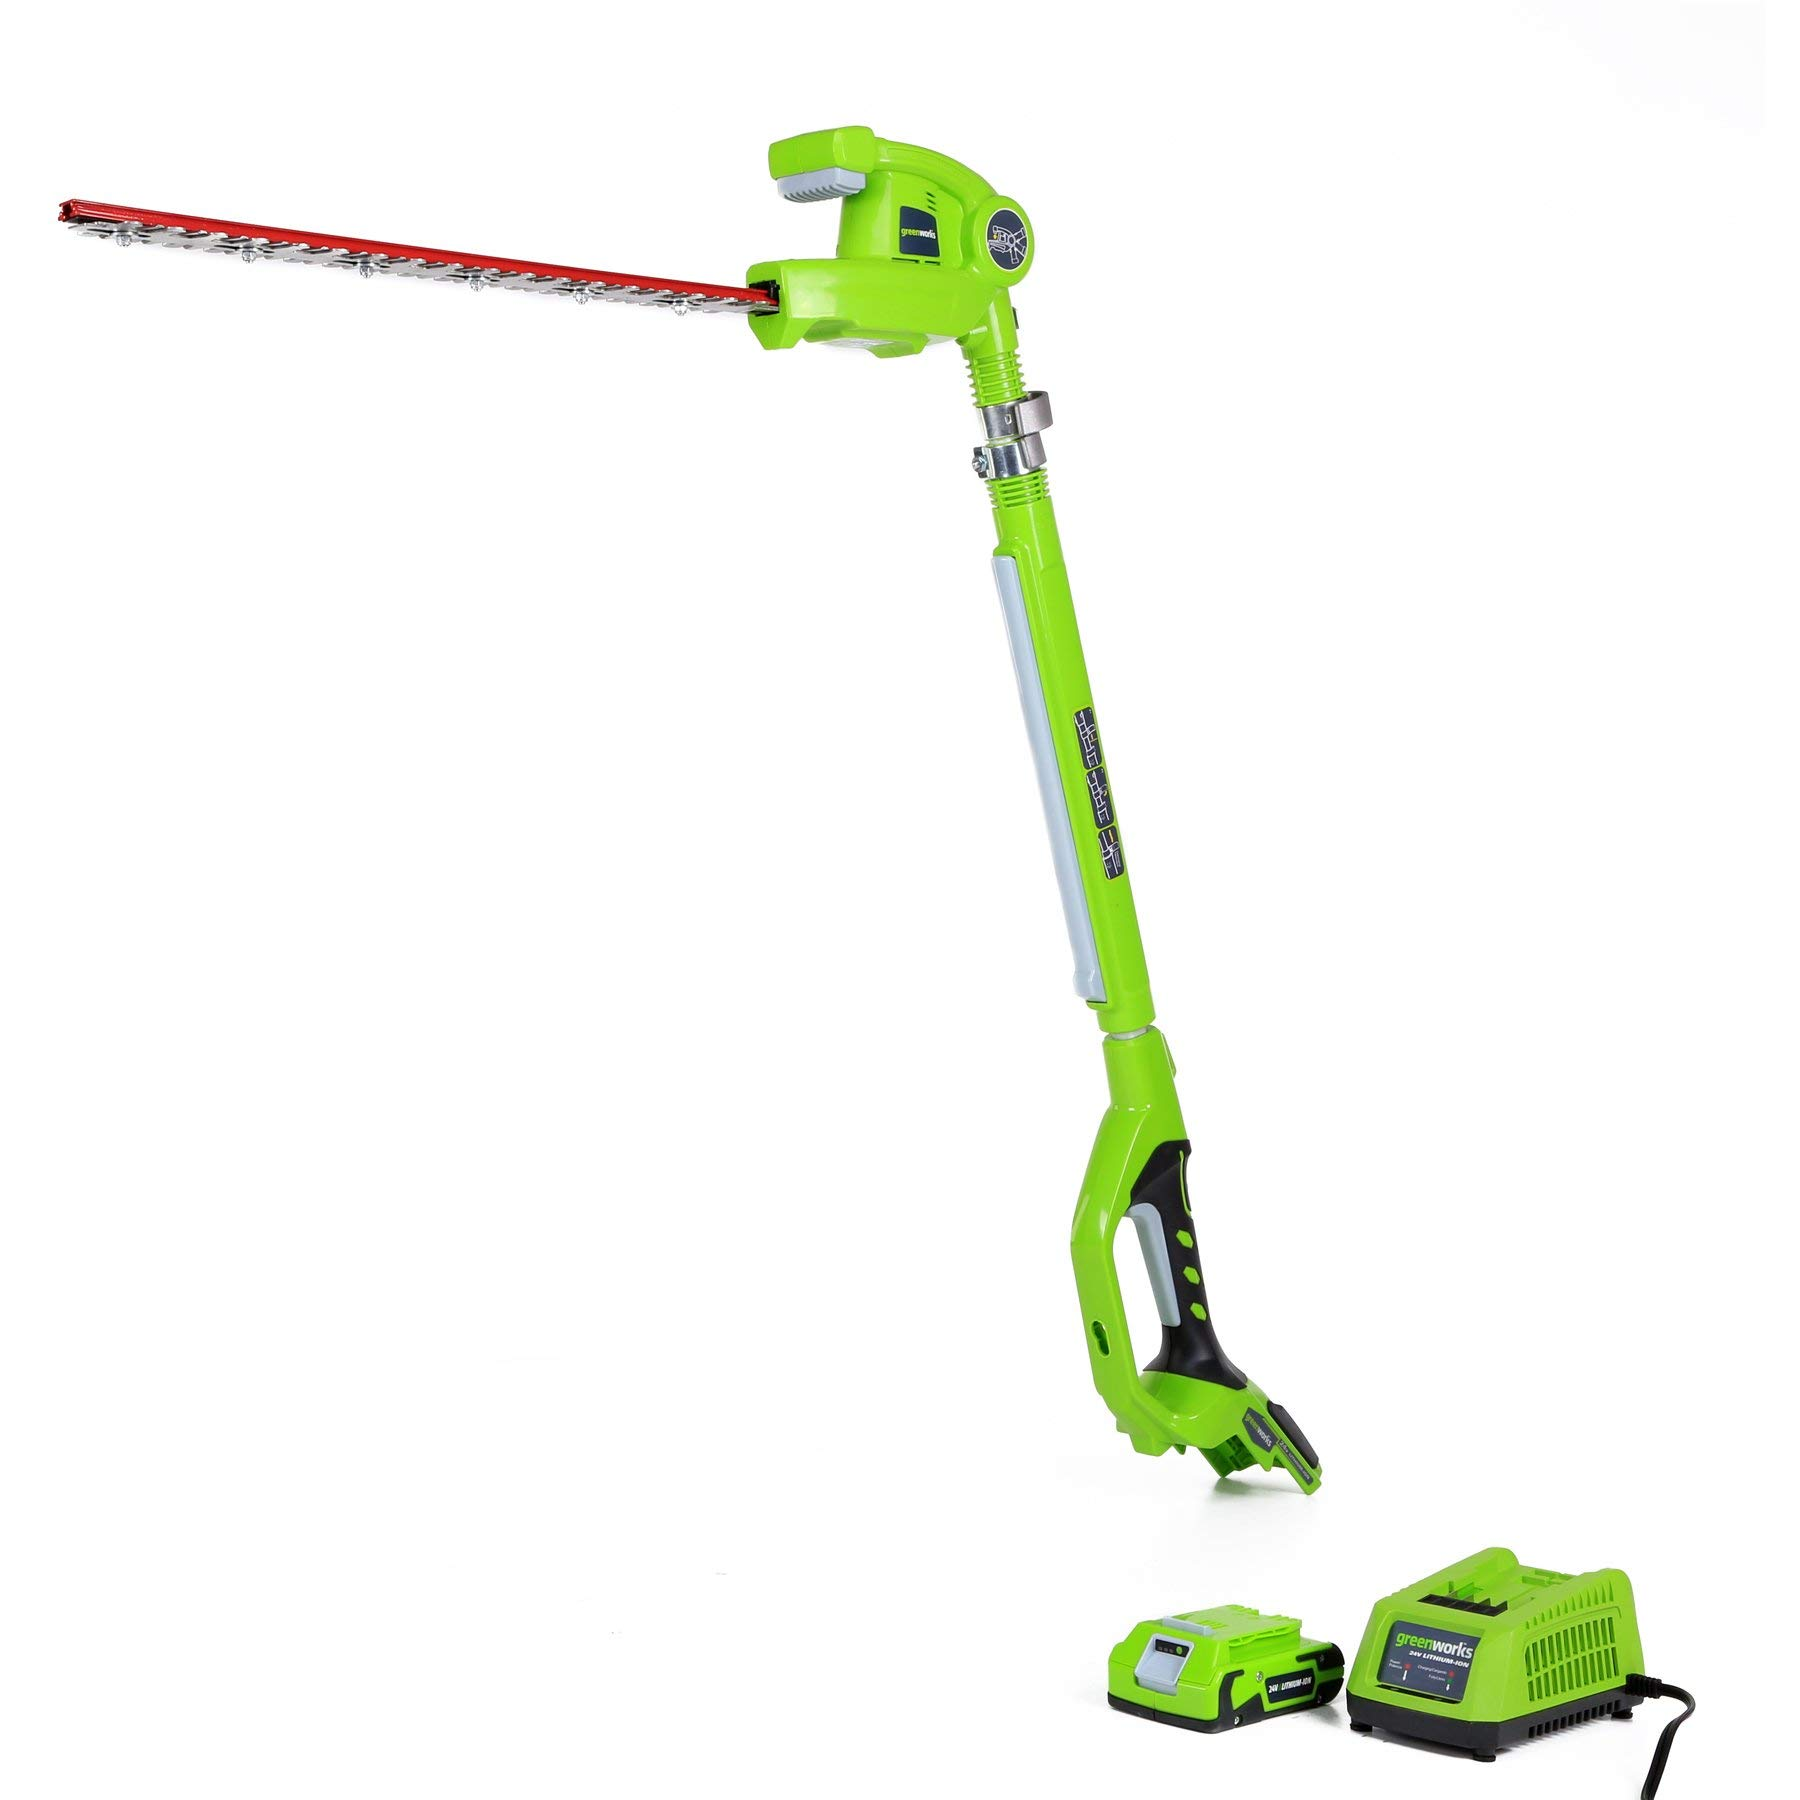 Greenworks 20-Inch 24V Cordless Pole Hedge Trimmer, 2.0 Battery Included 22242 (Renewed)